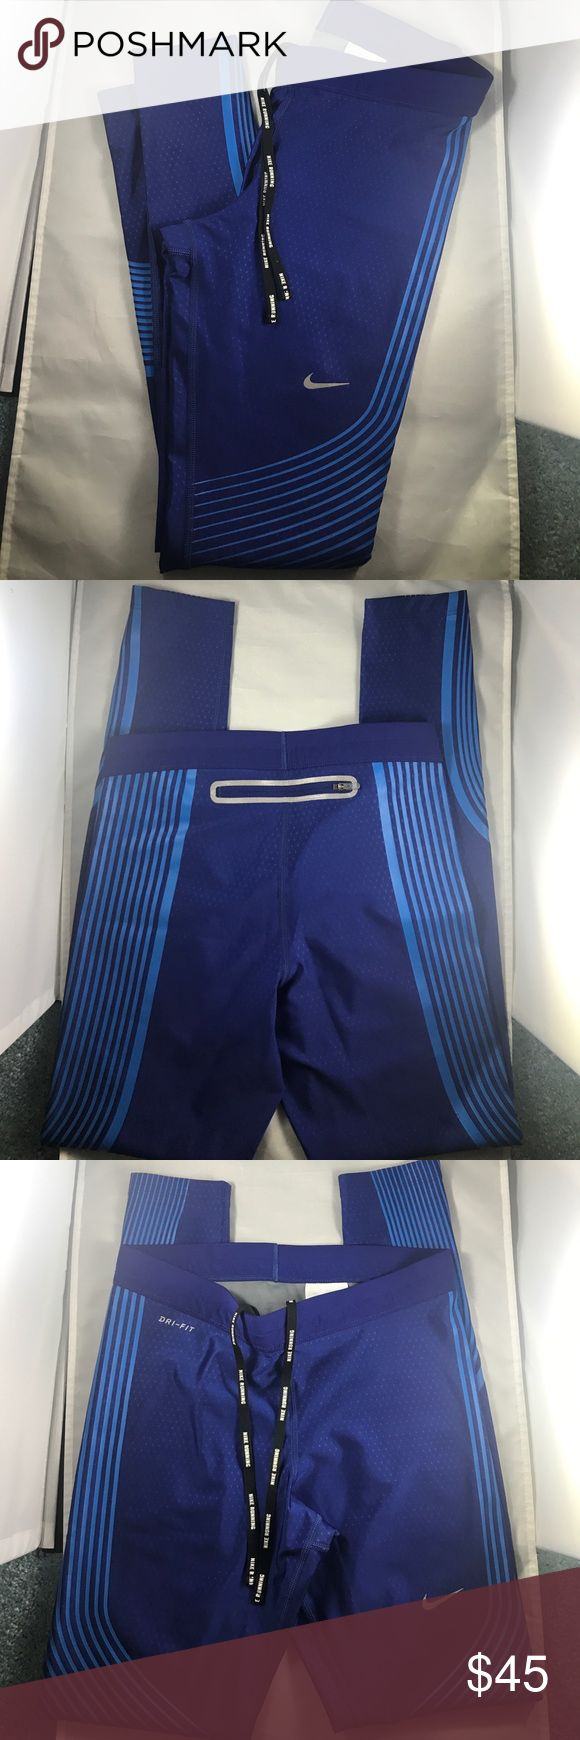 Nike Running Pants Size Small Royal blue Nike running pants with compression and zipper on the back. Size small. Only worn once. Nike Pants Track Pants & Joggers